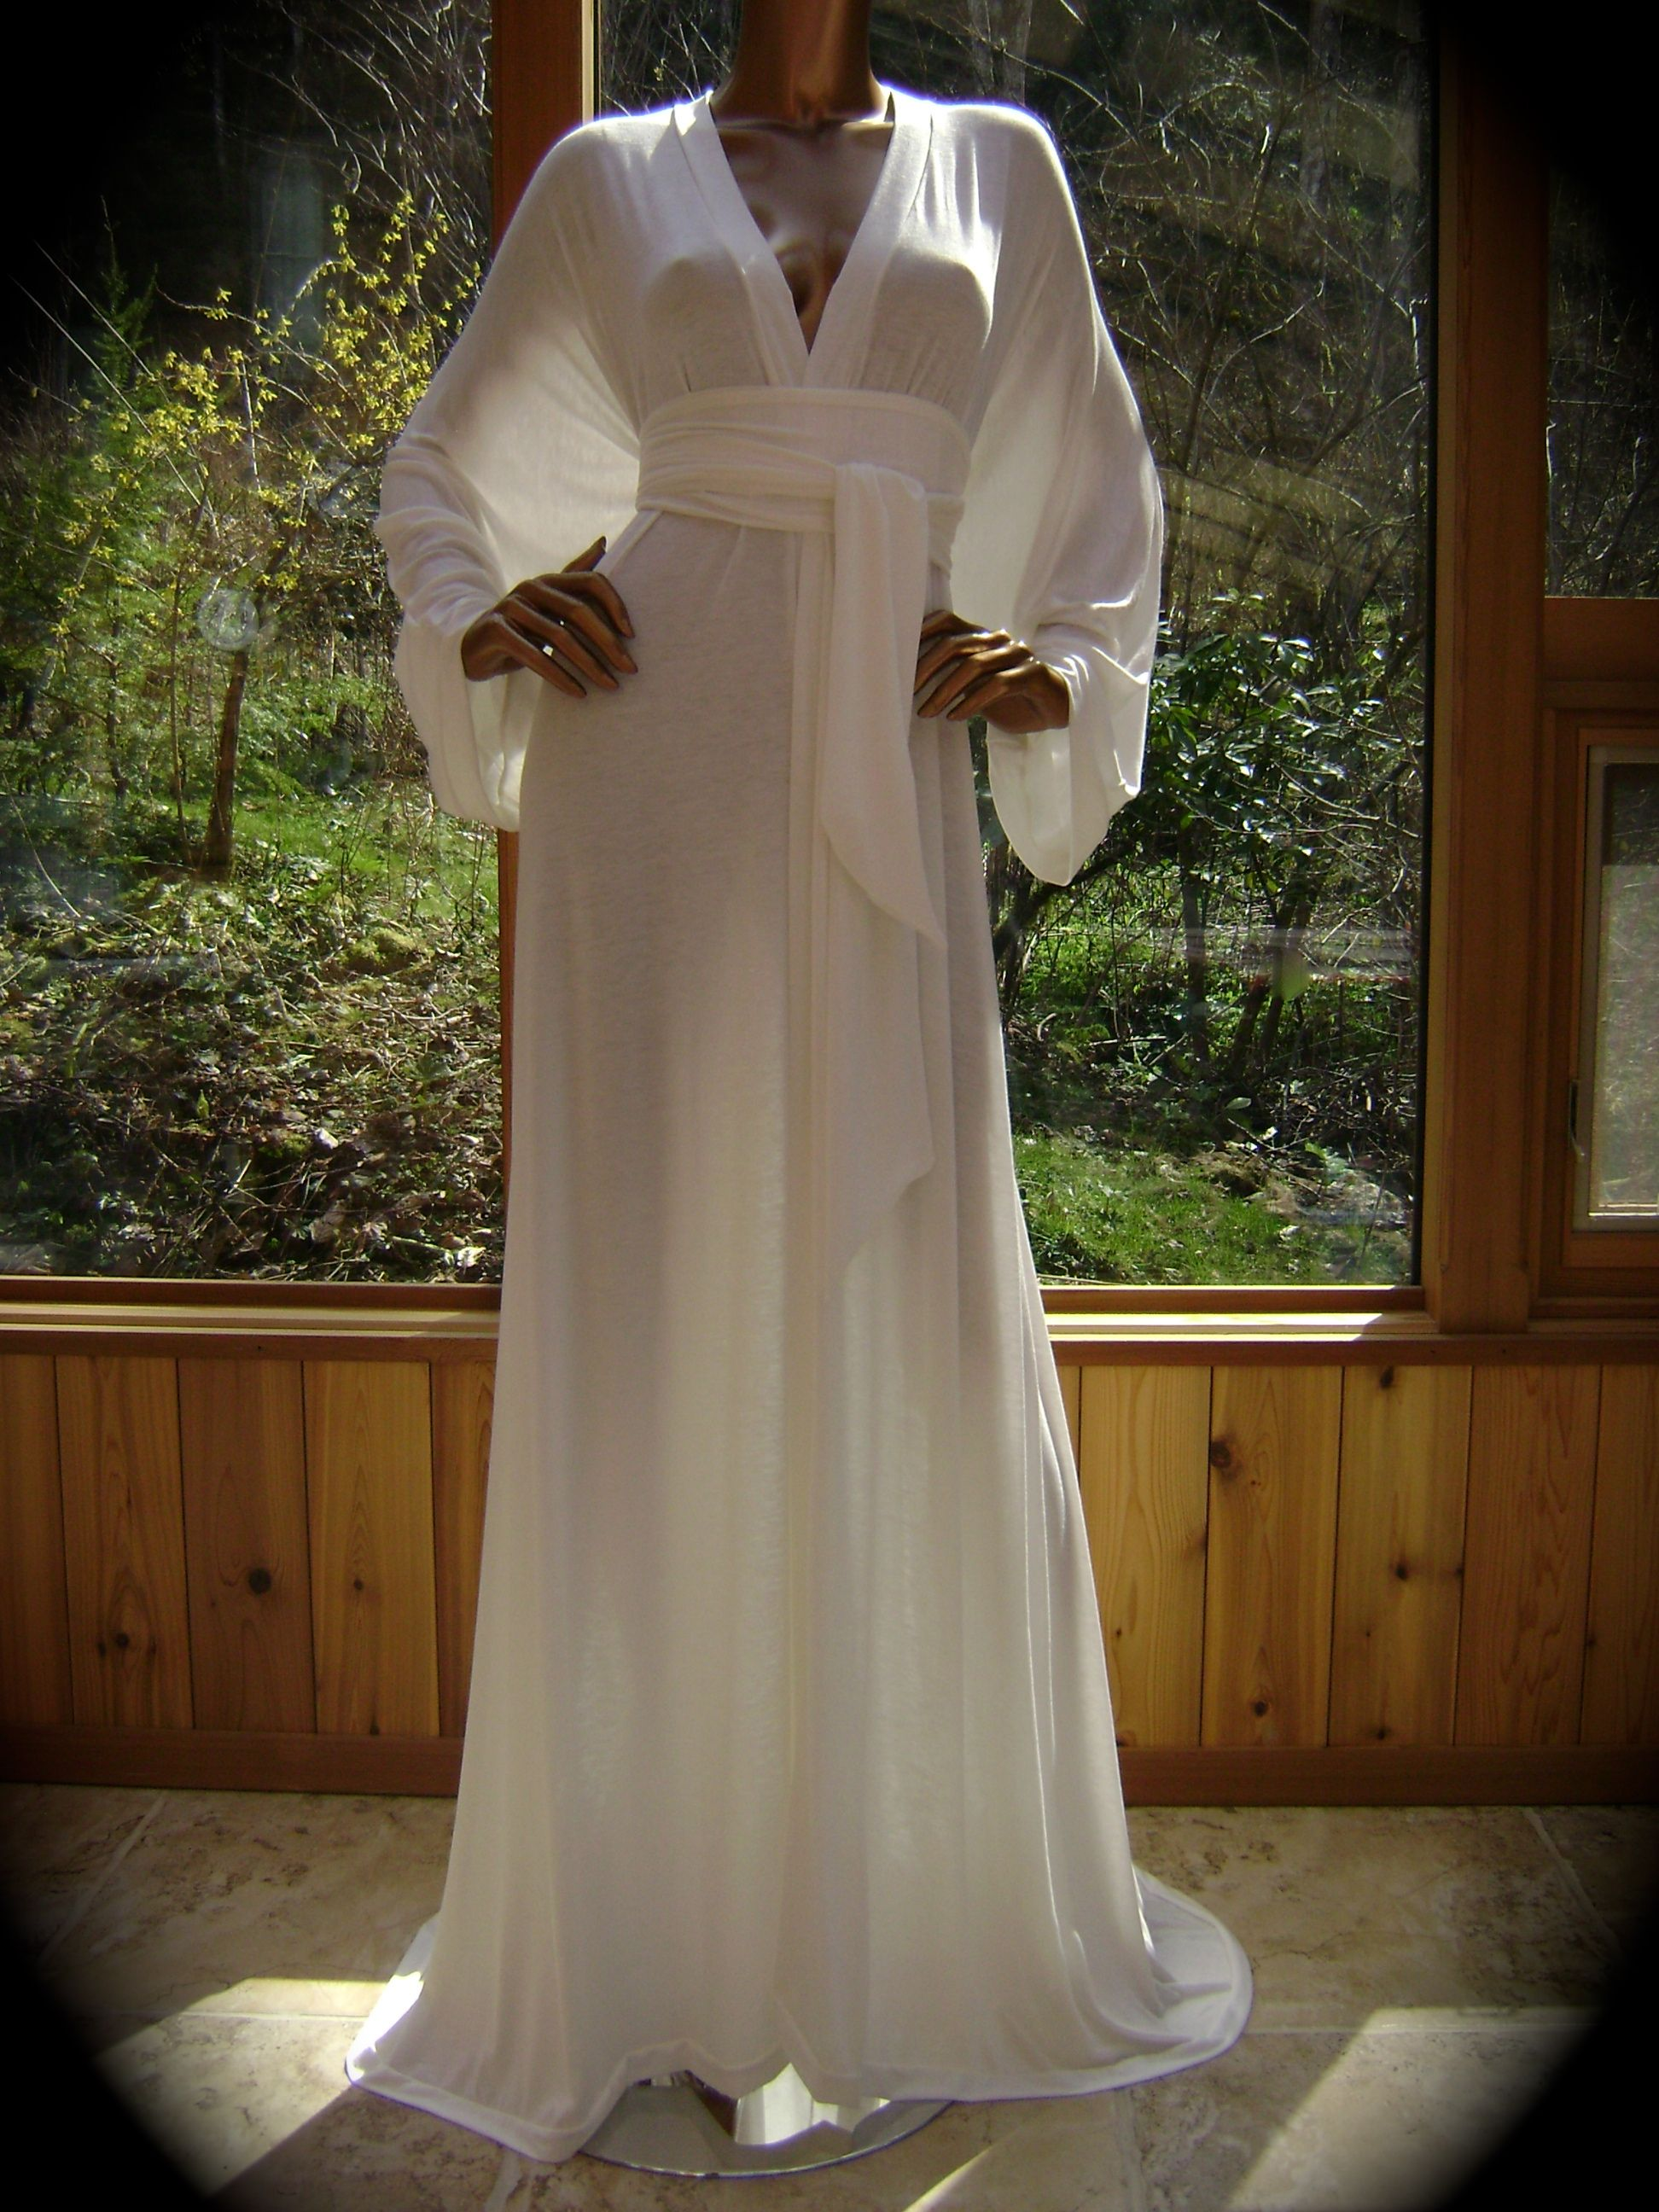 Elegant dressing robe in natural white stretch knit by jane havens